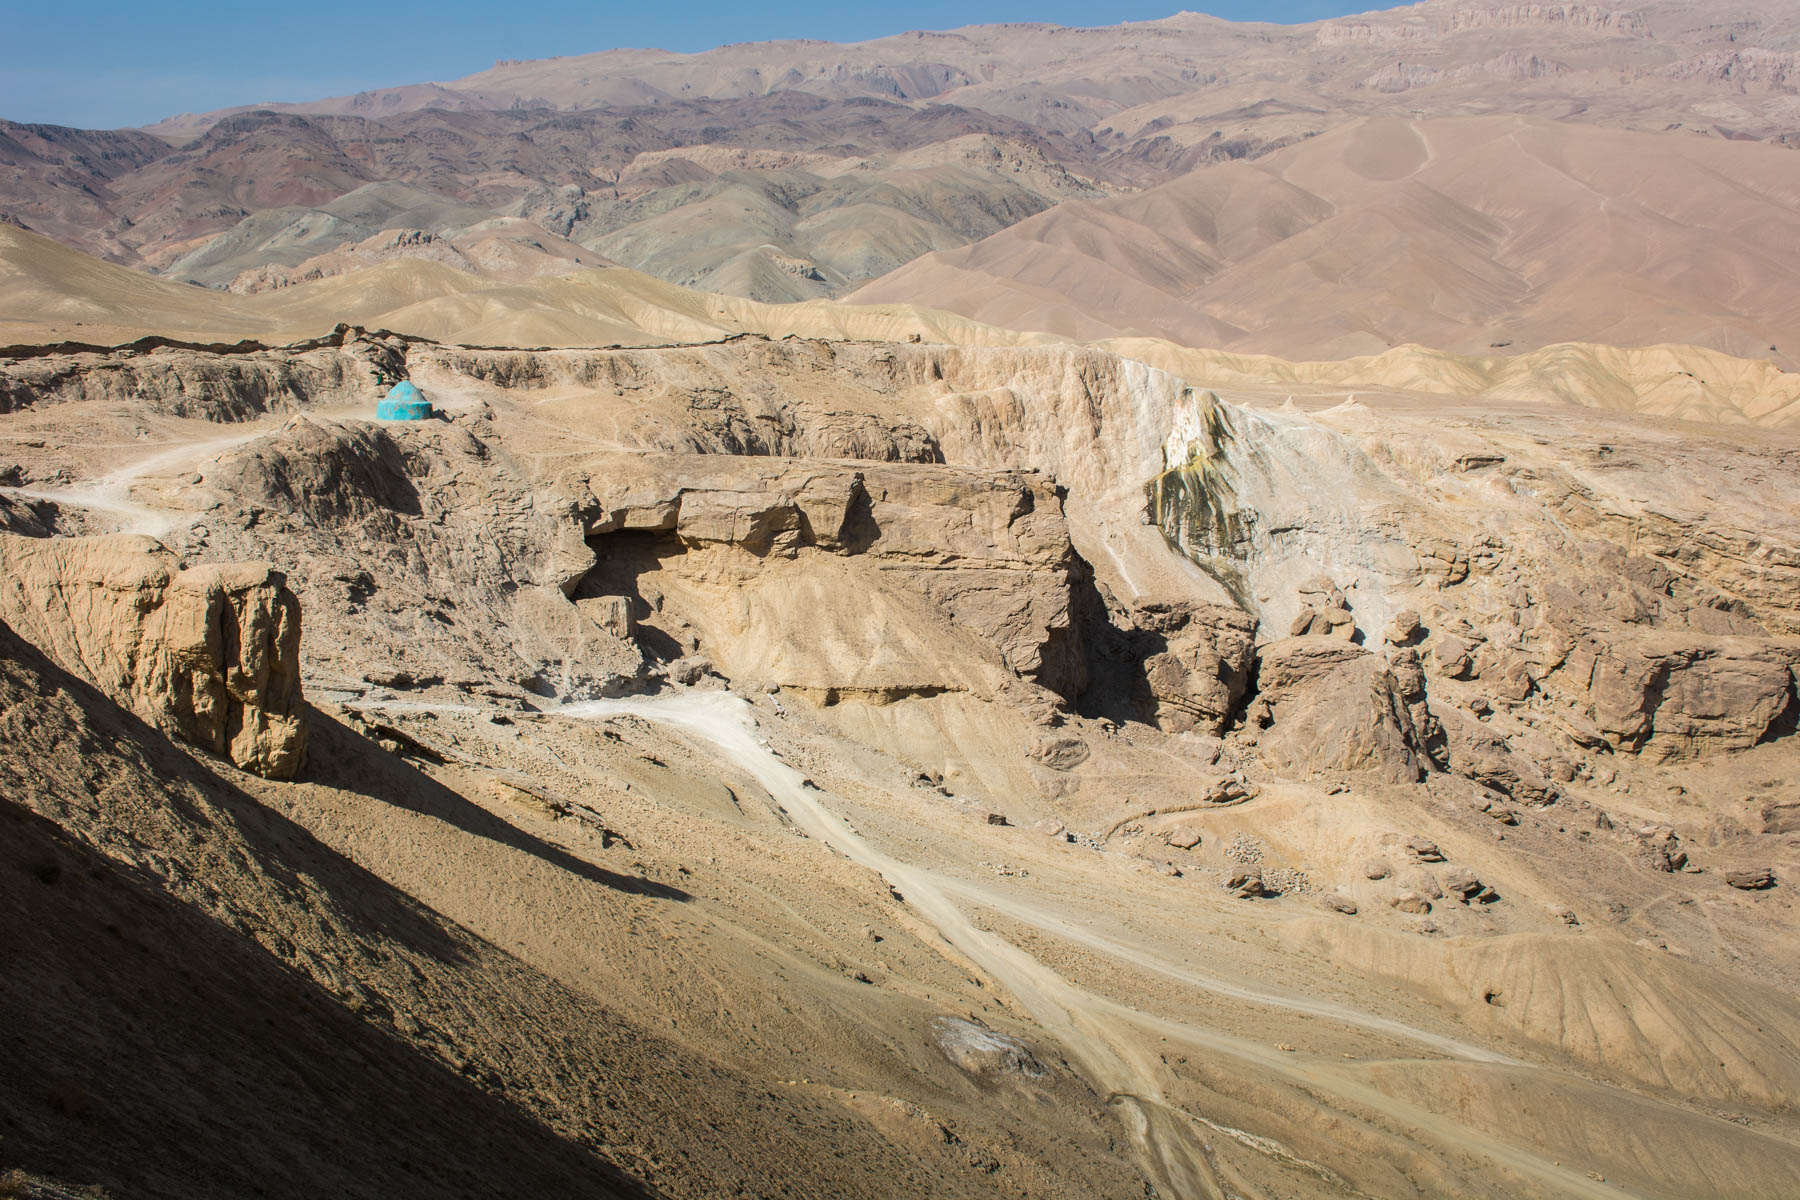 How much did one year of travel in Asia cost? - Dragon Valley near Bamiyan, Afghanistan - Lost With Purpose